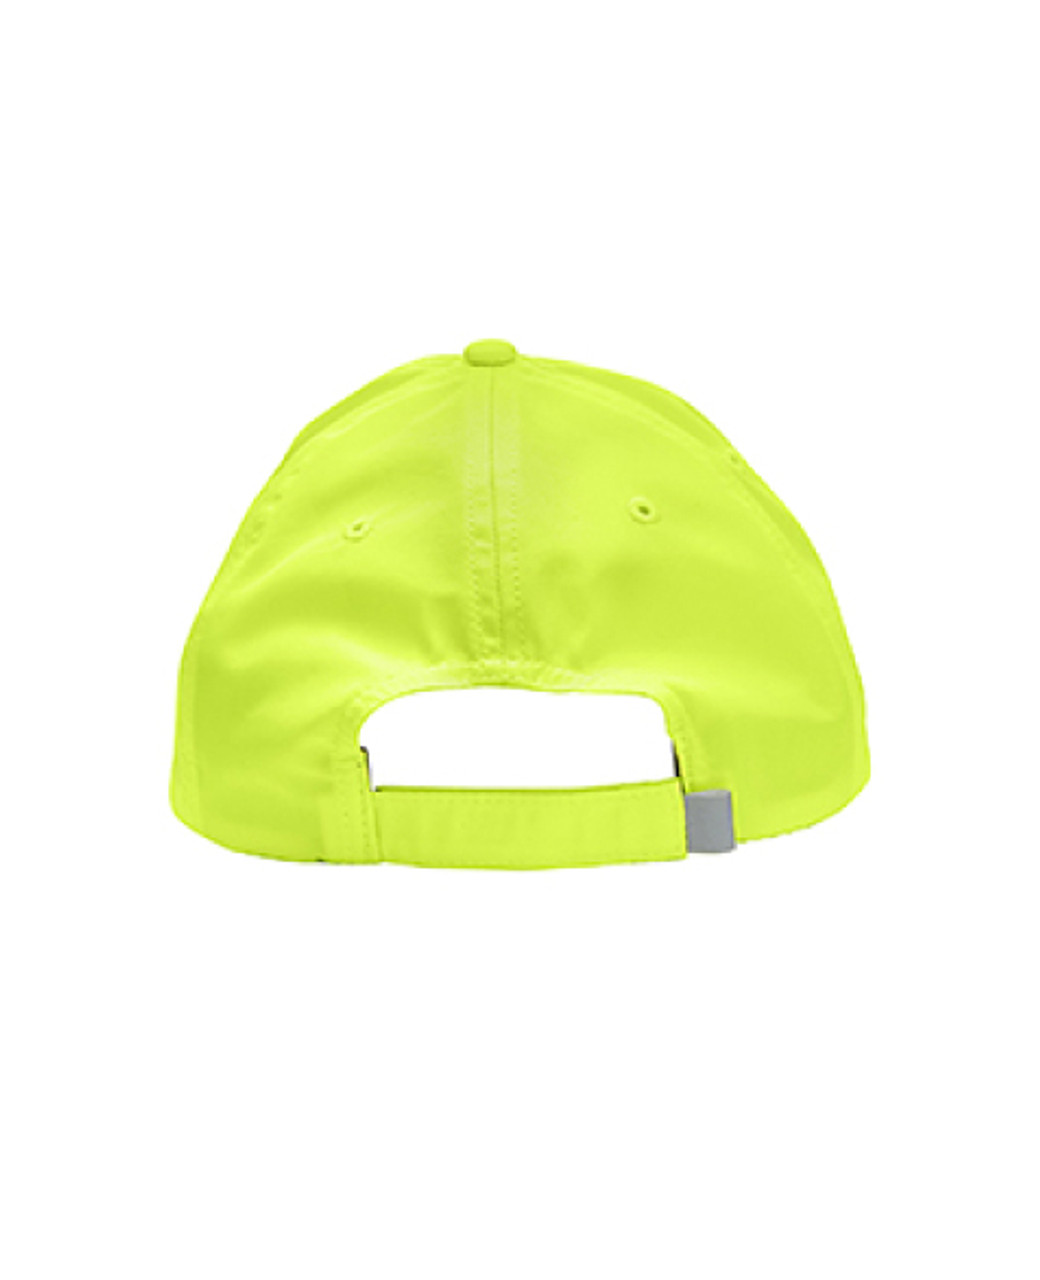 Safety Yellow Microfiber Performance Hat